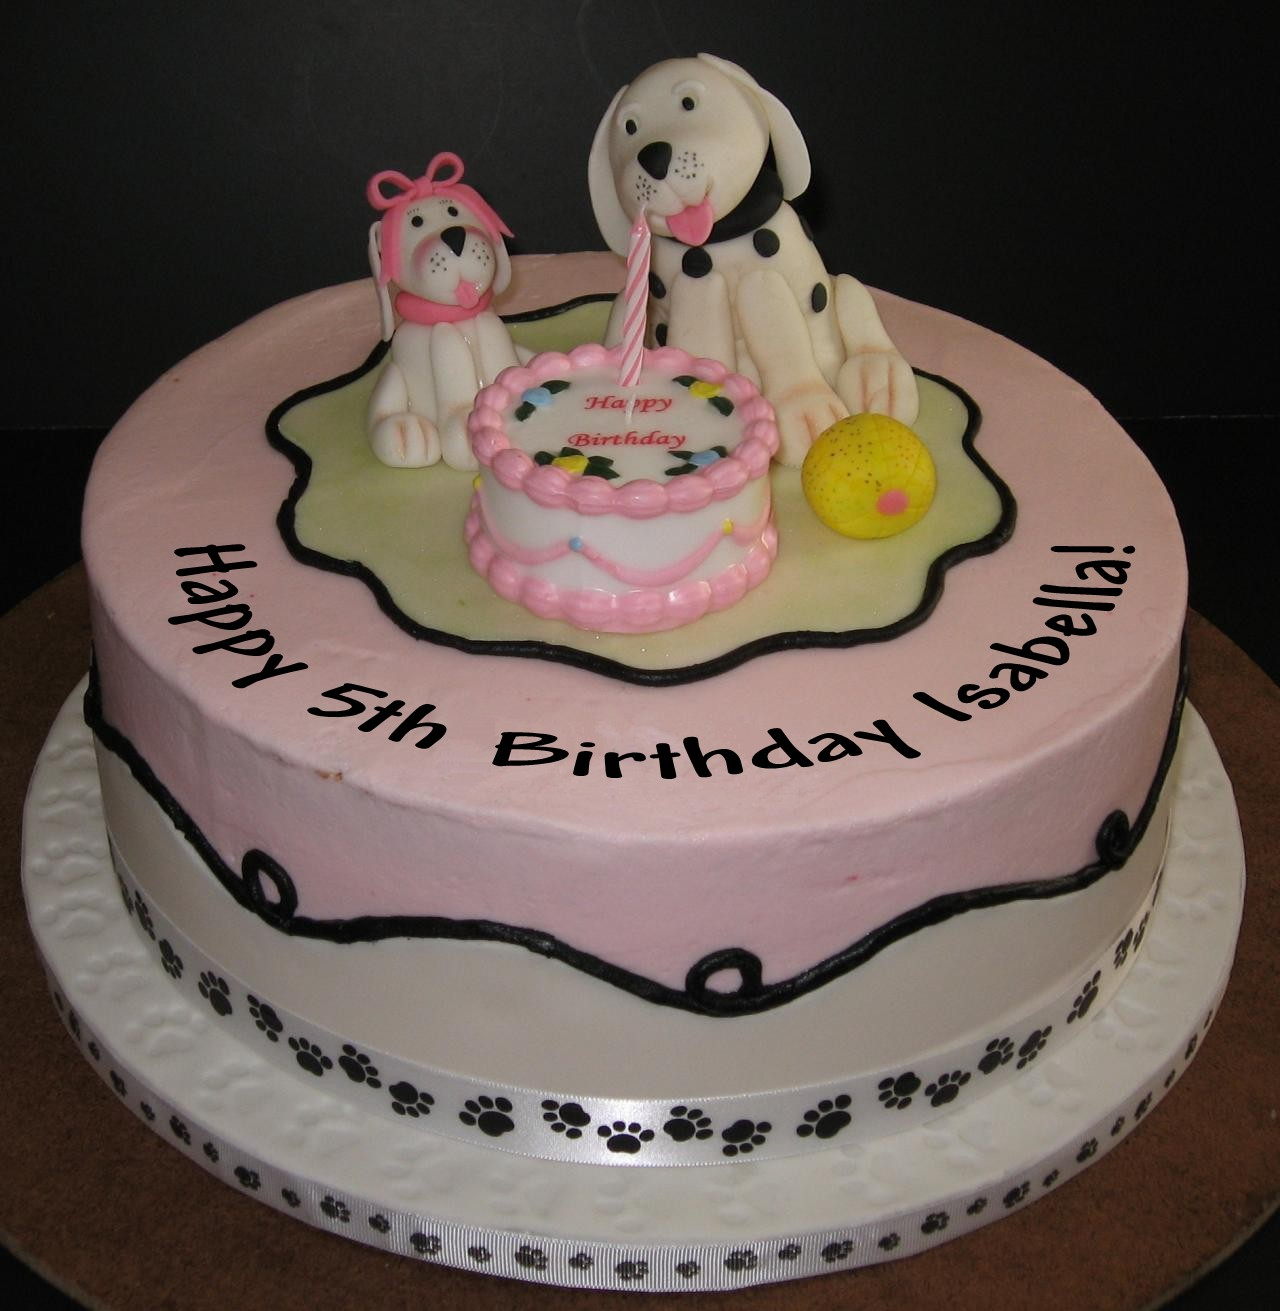 Cake Designs For Baby Girl 5th Birthday : It s A Dog s Life: It s Isabella s 5th Birthday Today!!